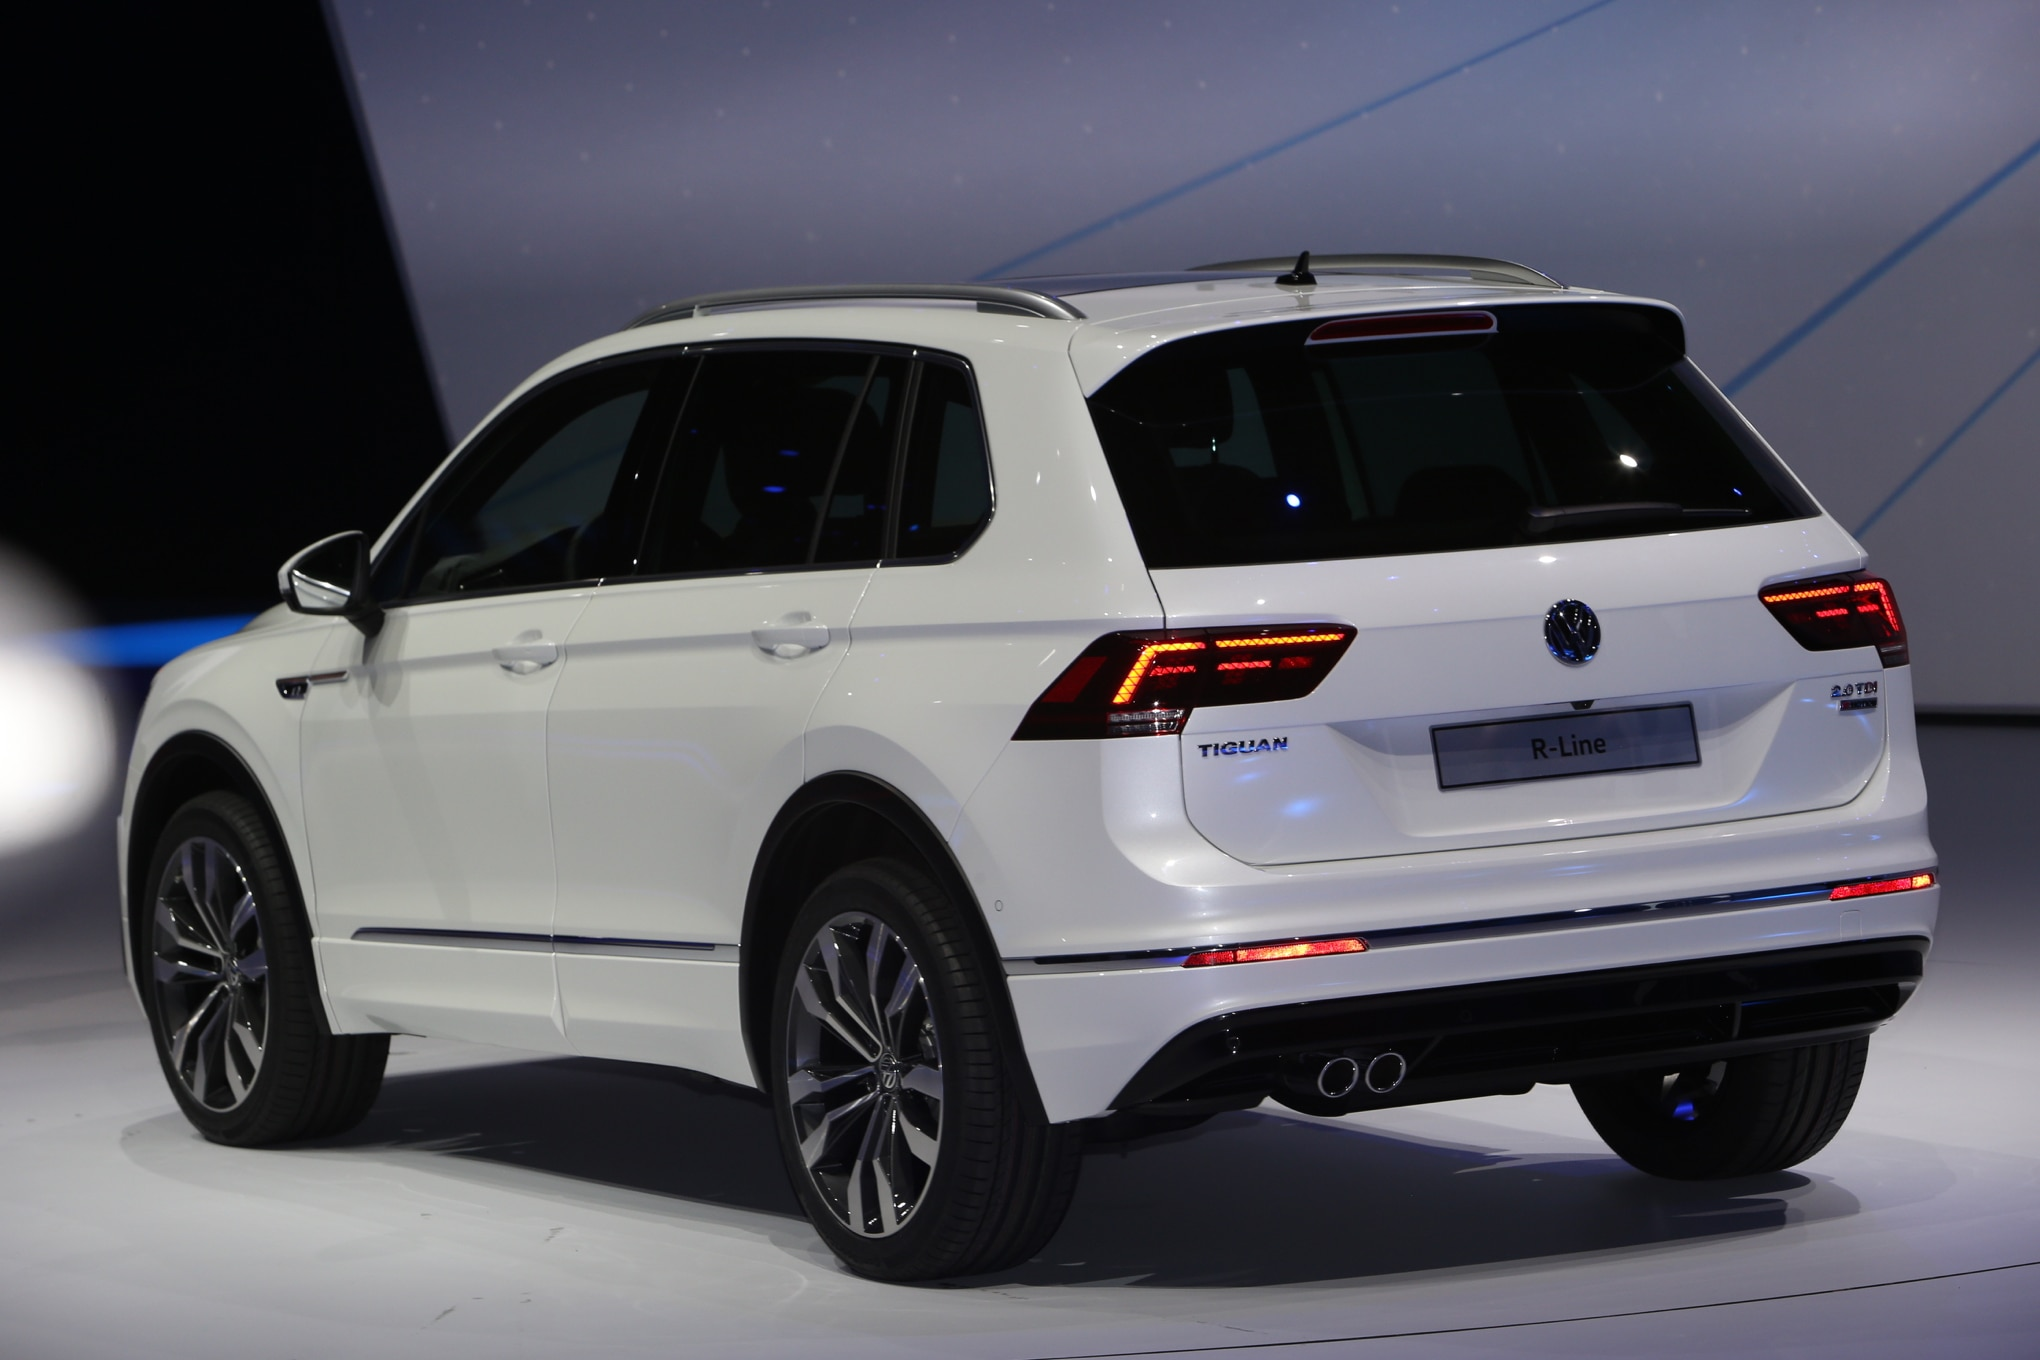 volkswagen tiguan 2017 primer vistazo. Black Bedroom Furniture Sets. Home Design Ideas